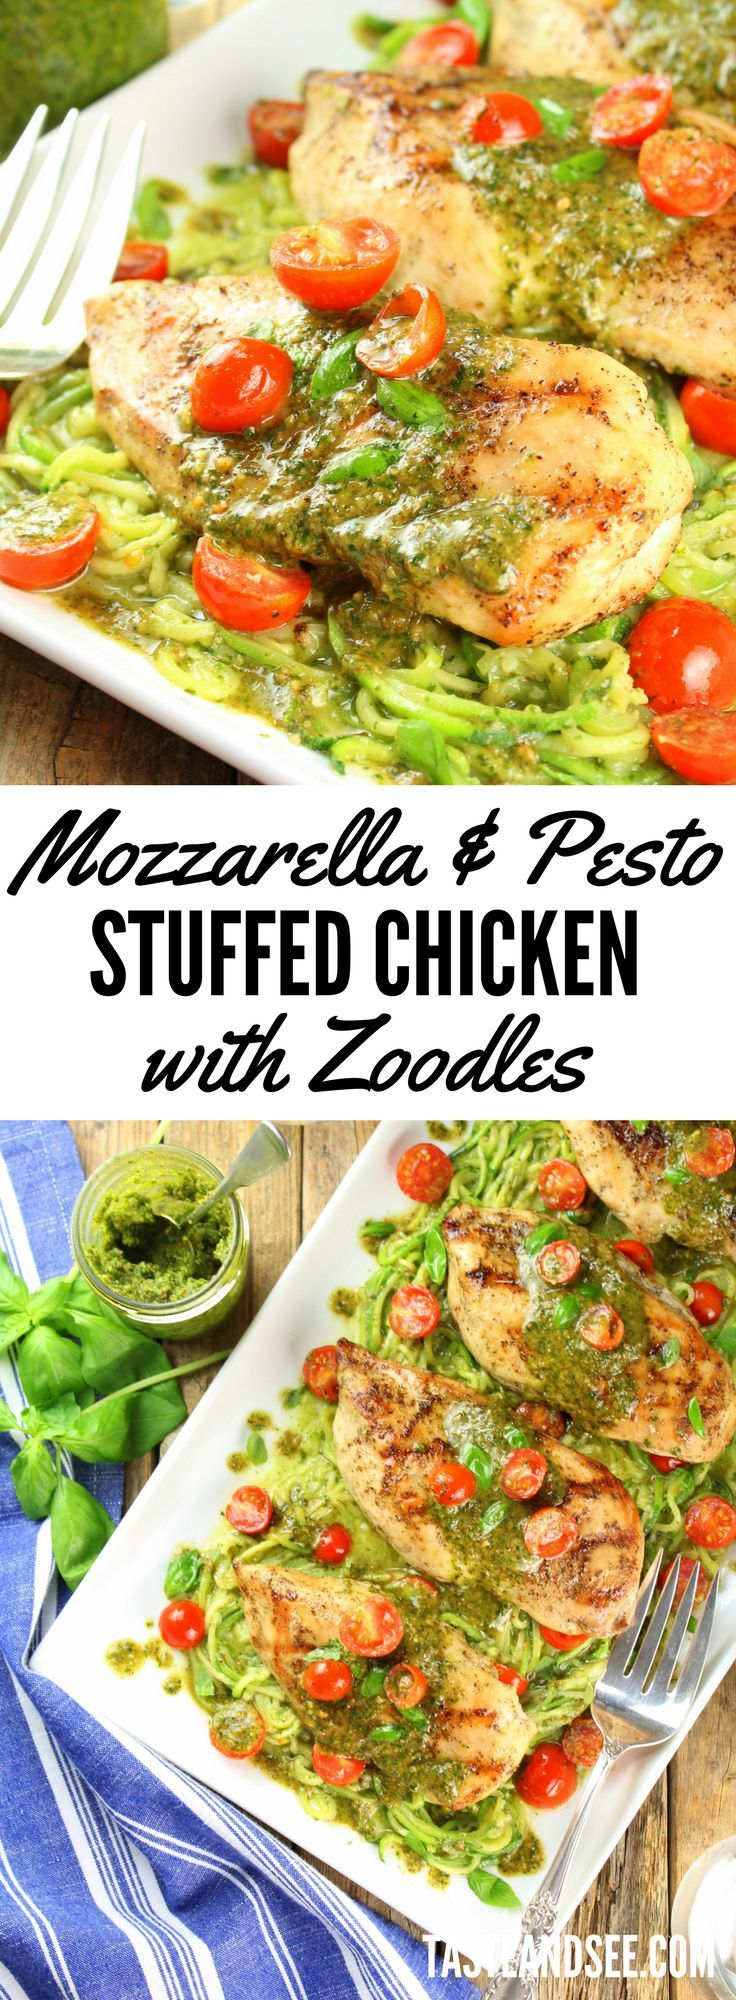 Mozzarella and Pesto Stuffed Chicken with Zoodles - with smoky homemade pesto, boneless skinless chicken breasts, and zucchini noodles.  Delicious & healthy!  http://tasteandsee.com